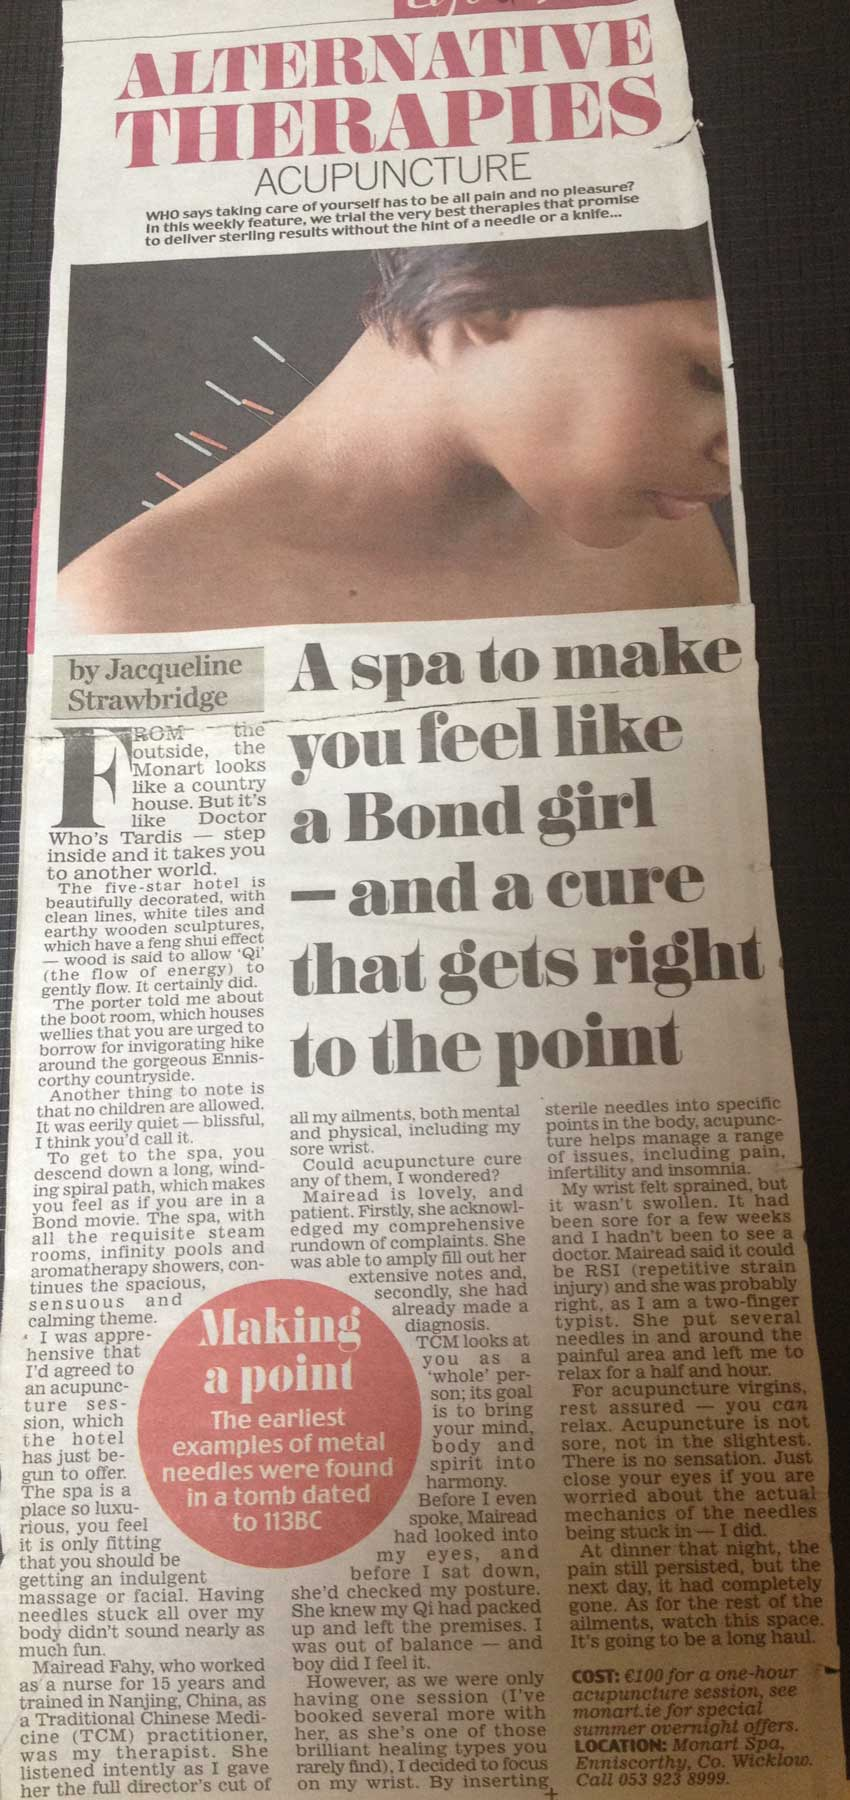 Monart Spa Article on Acupunture Treatments available from Mairead FAhy